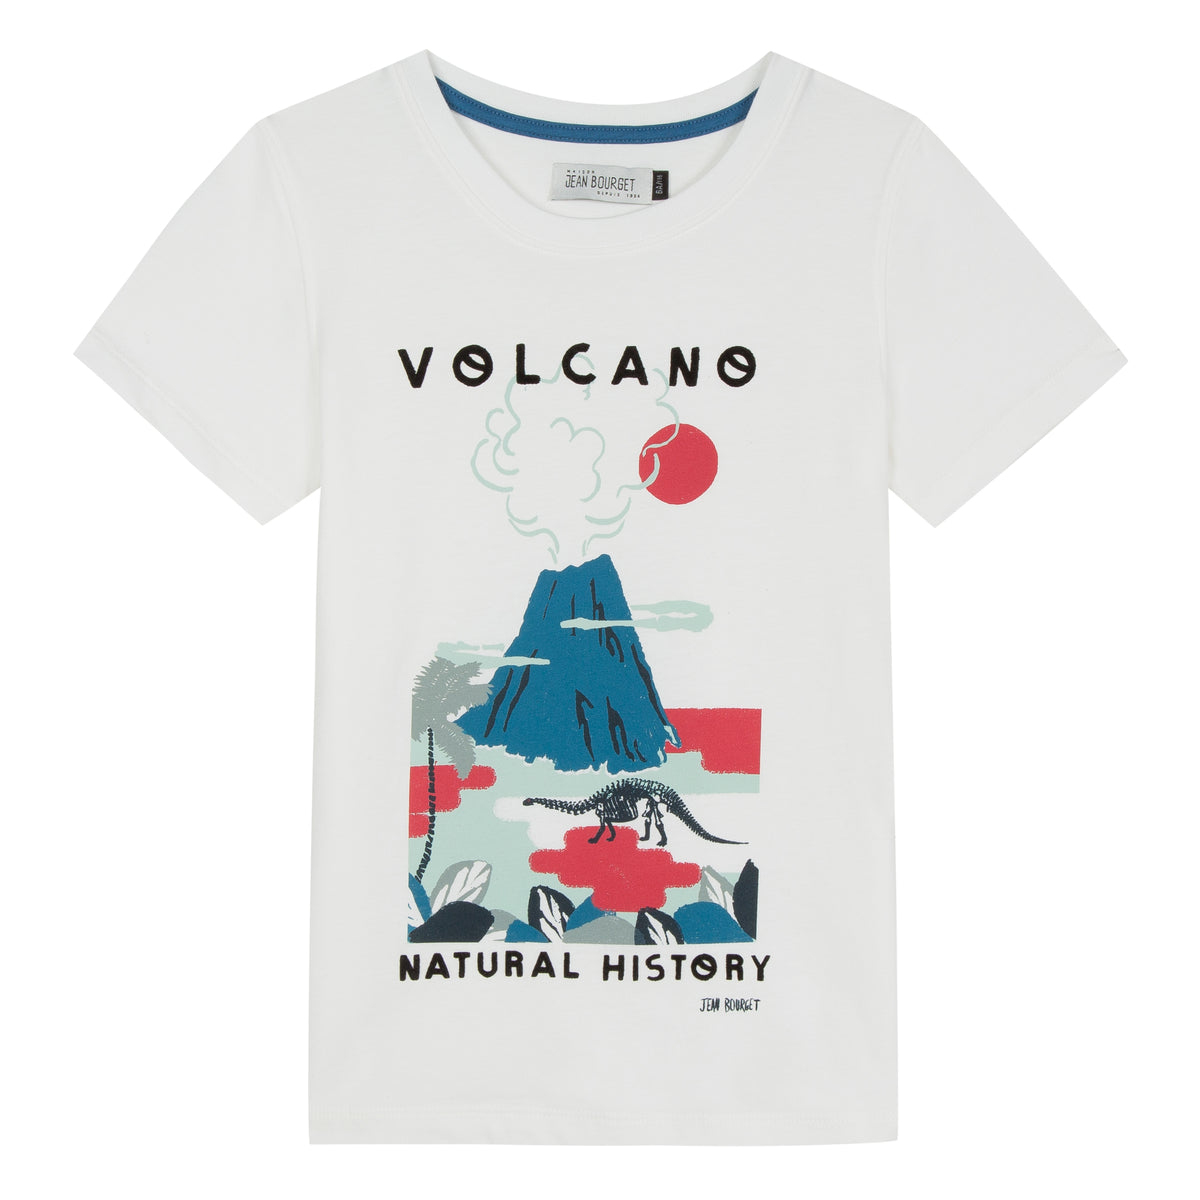 Very graphic, this short-sleeved tee-shirt in white cotton jersey invites a return to prehistory. A volcano is screen printed in cobalt blue in a red and blue gray decor. Shop Jean Bourget.